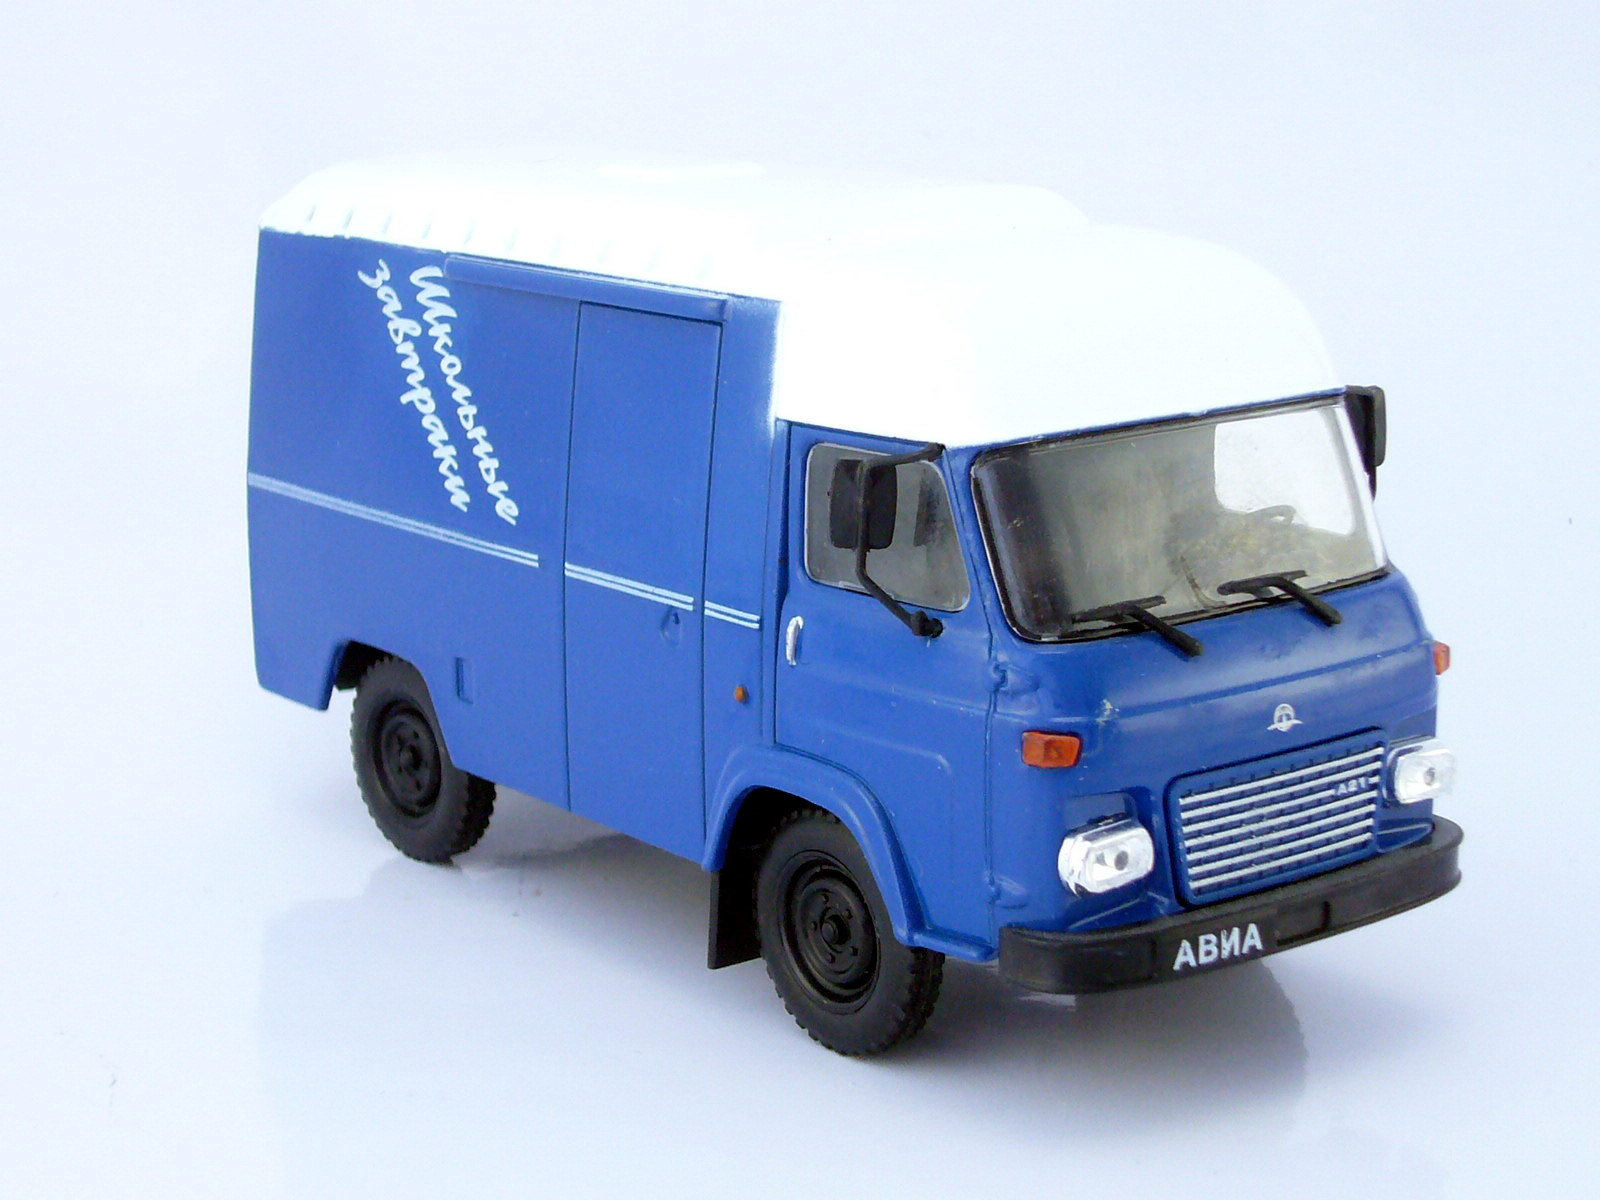 AVIA-21F School lunch USSR 1:43 DeAgostini Service Vehicle #44